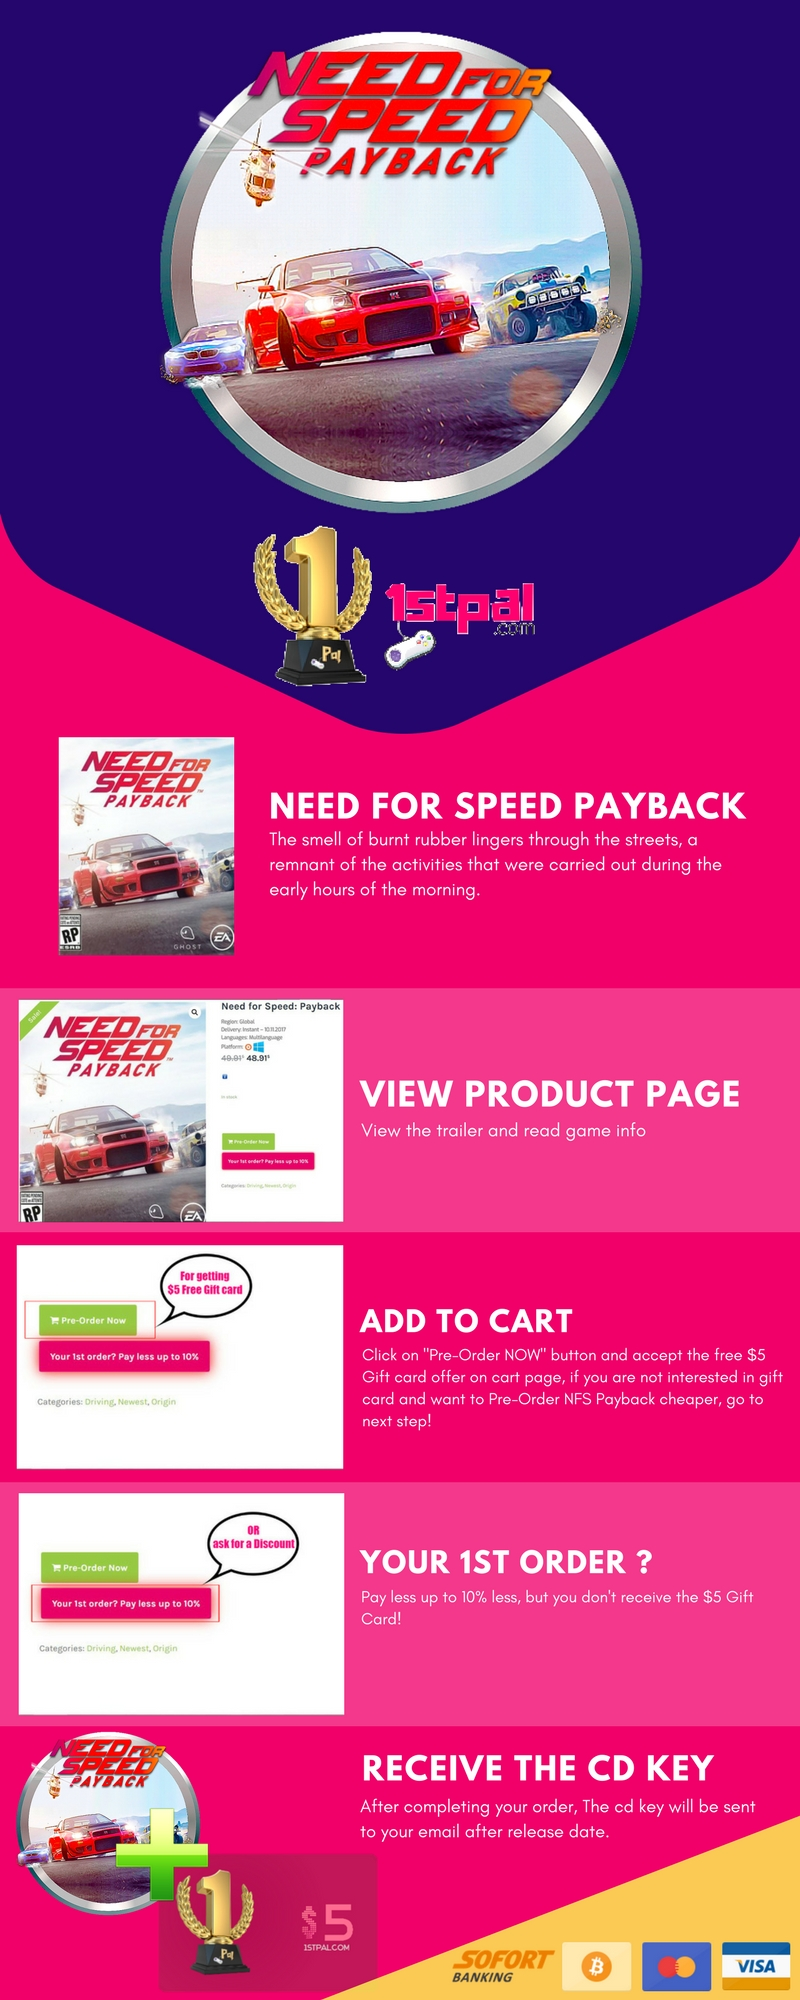 NEED FOR SPEED PAYBACK PC Key - Giveaway